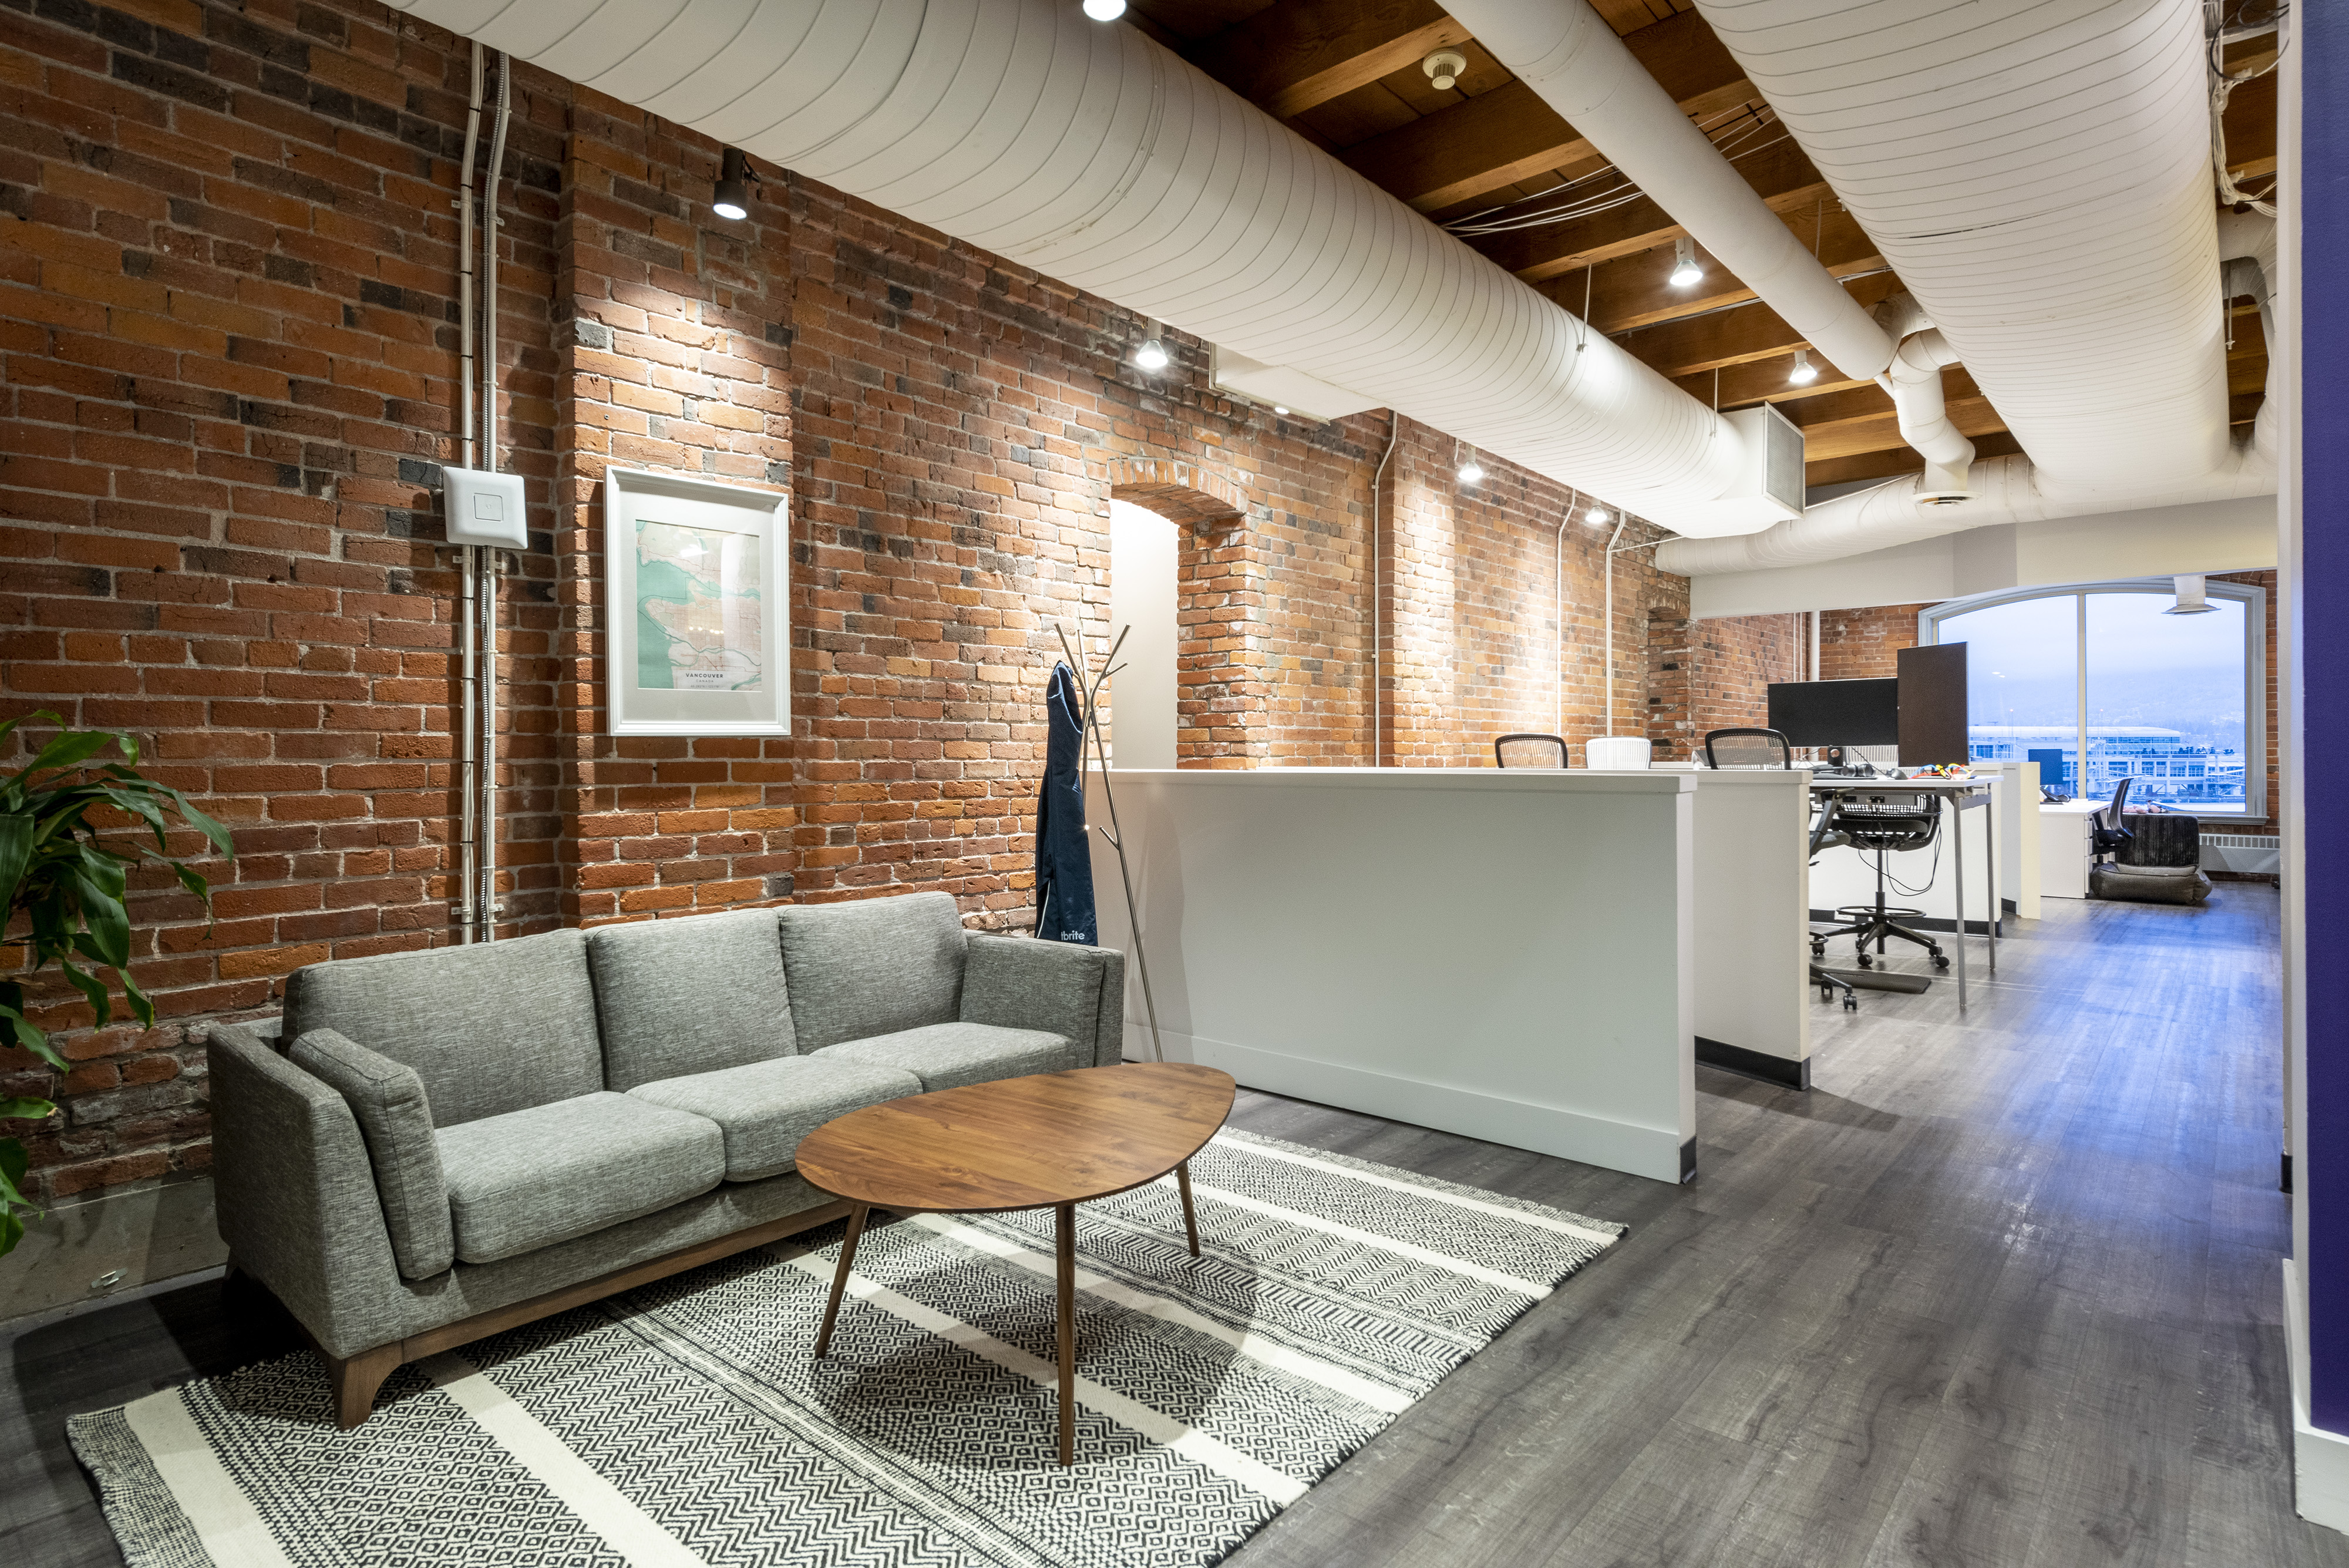 375 Water Street - Vancouver - Downtown/Gastown - BC